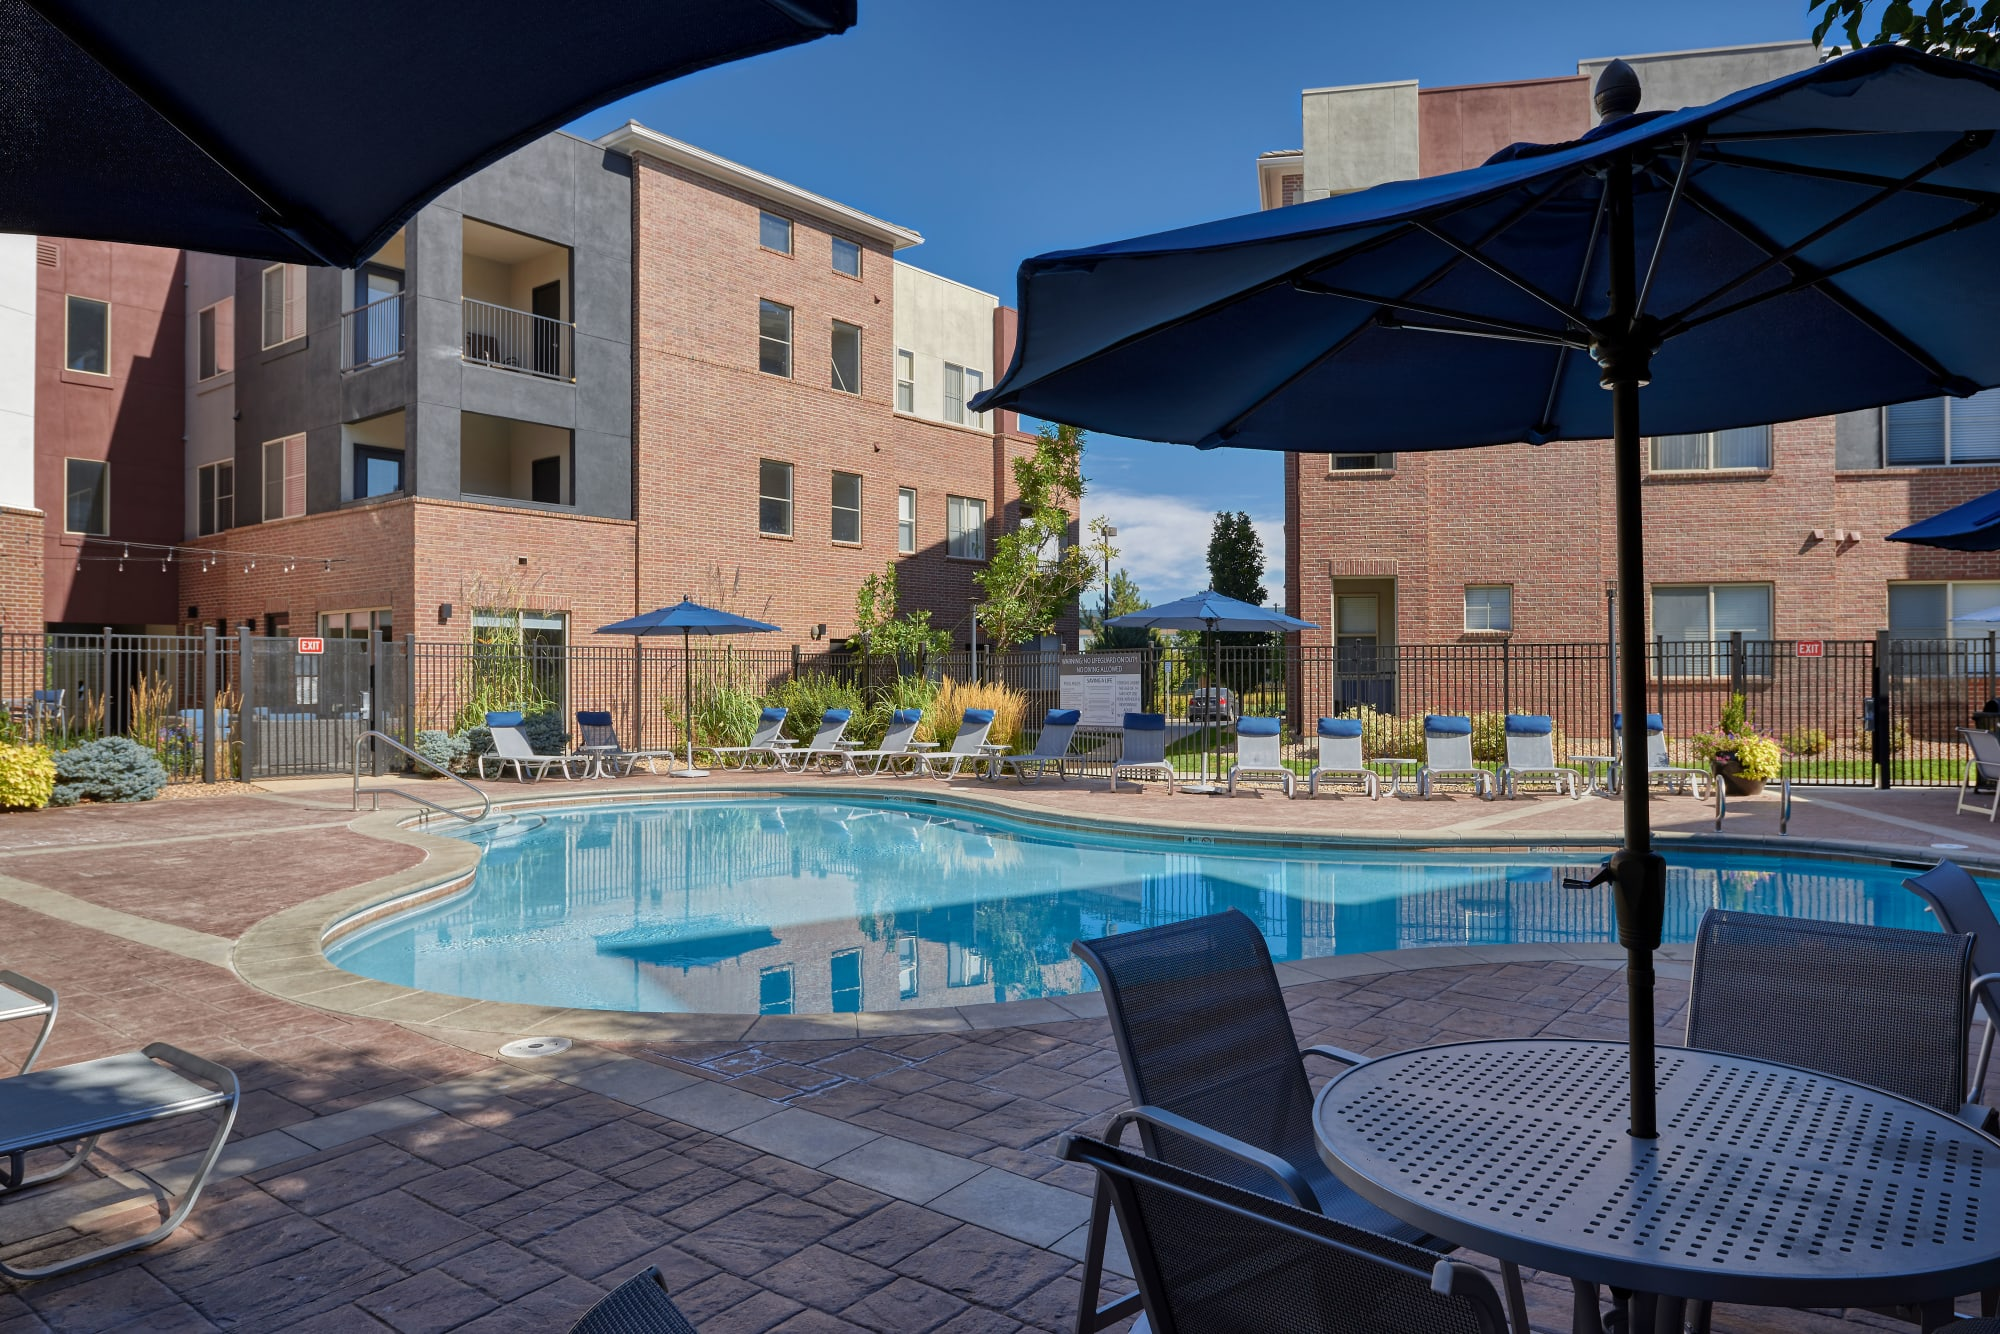 A swimming pool and spa that is great for entertaining at The Rail at Inverness in Englewood, CO